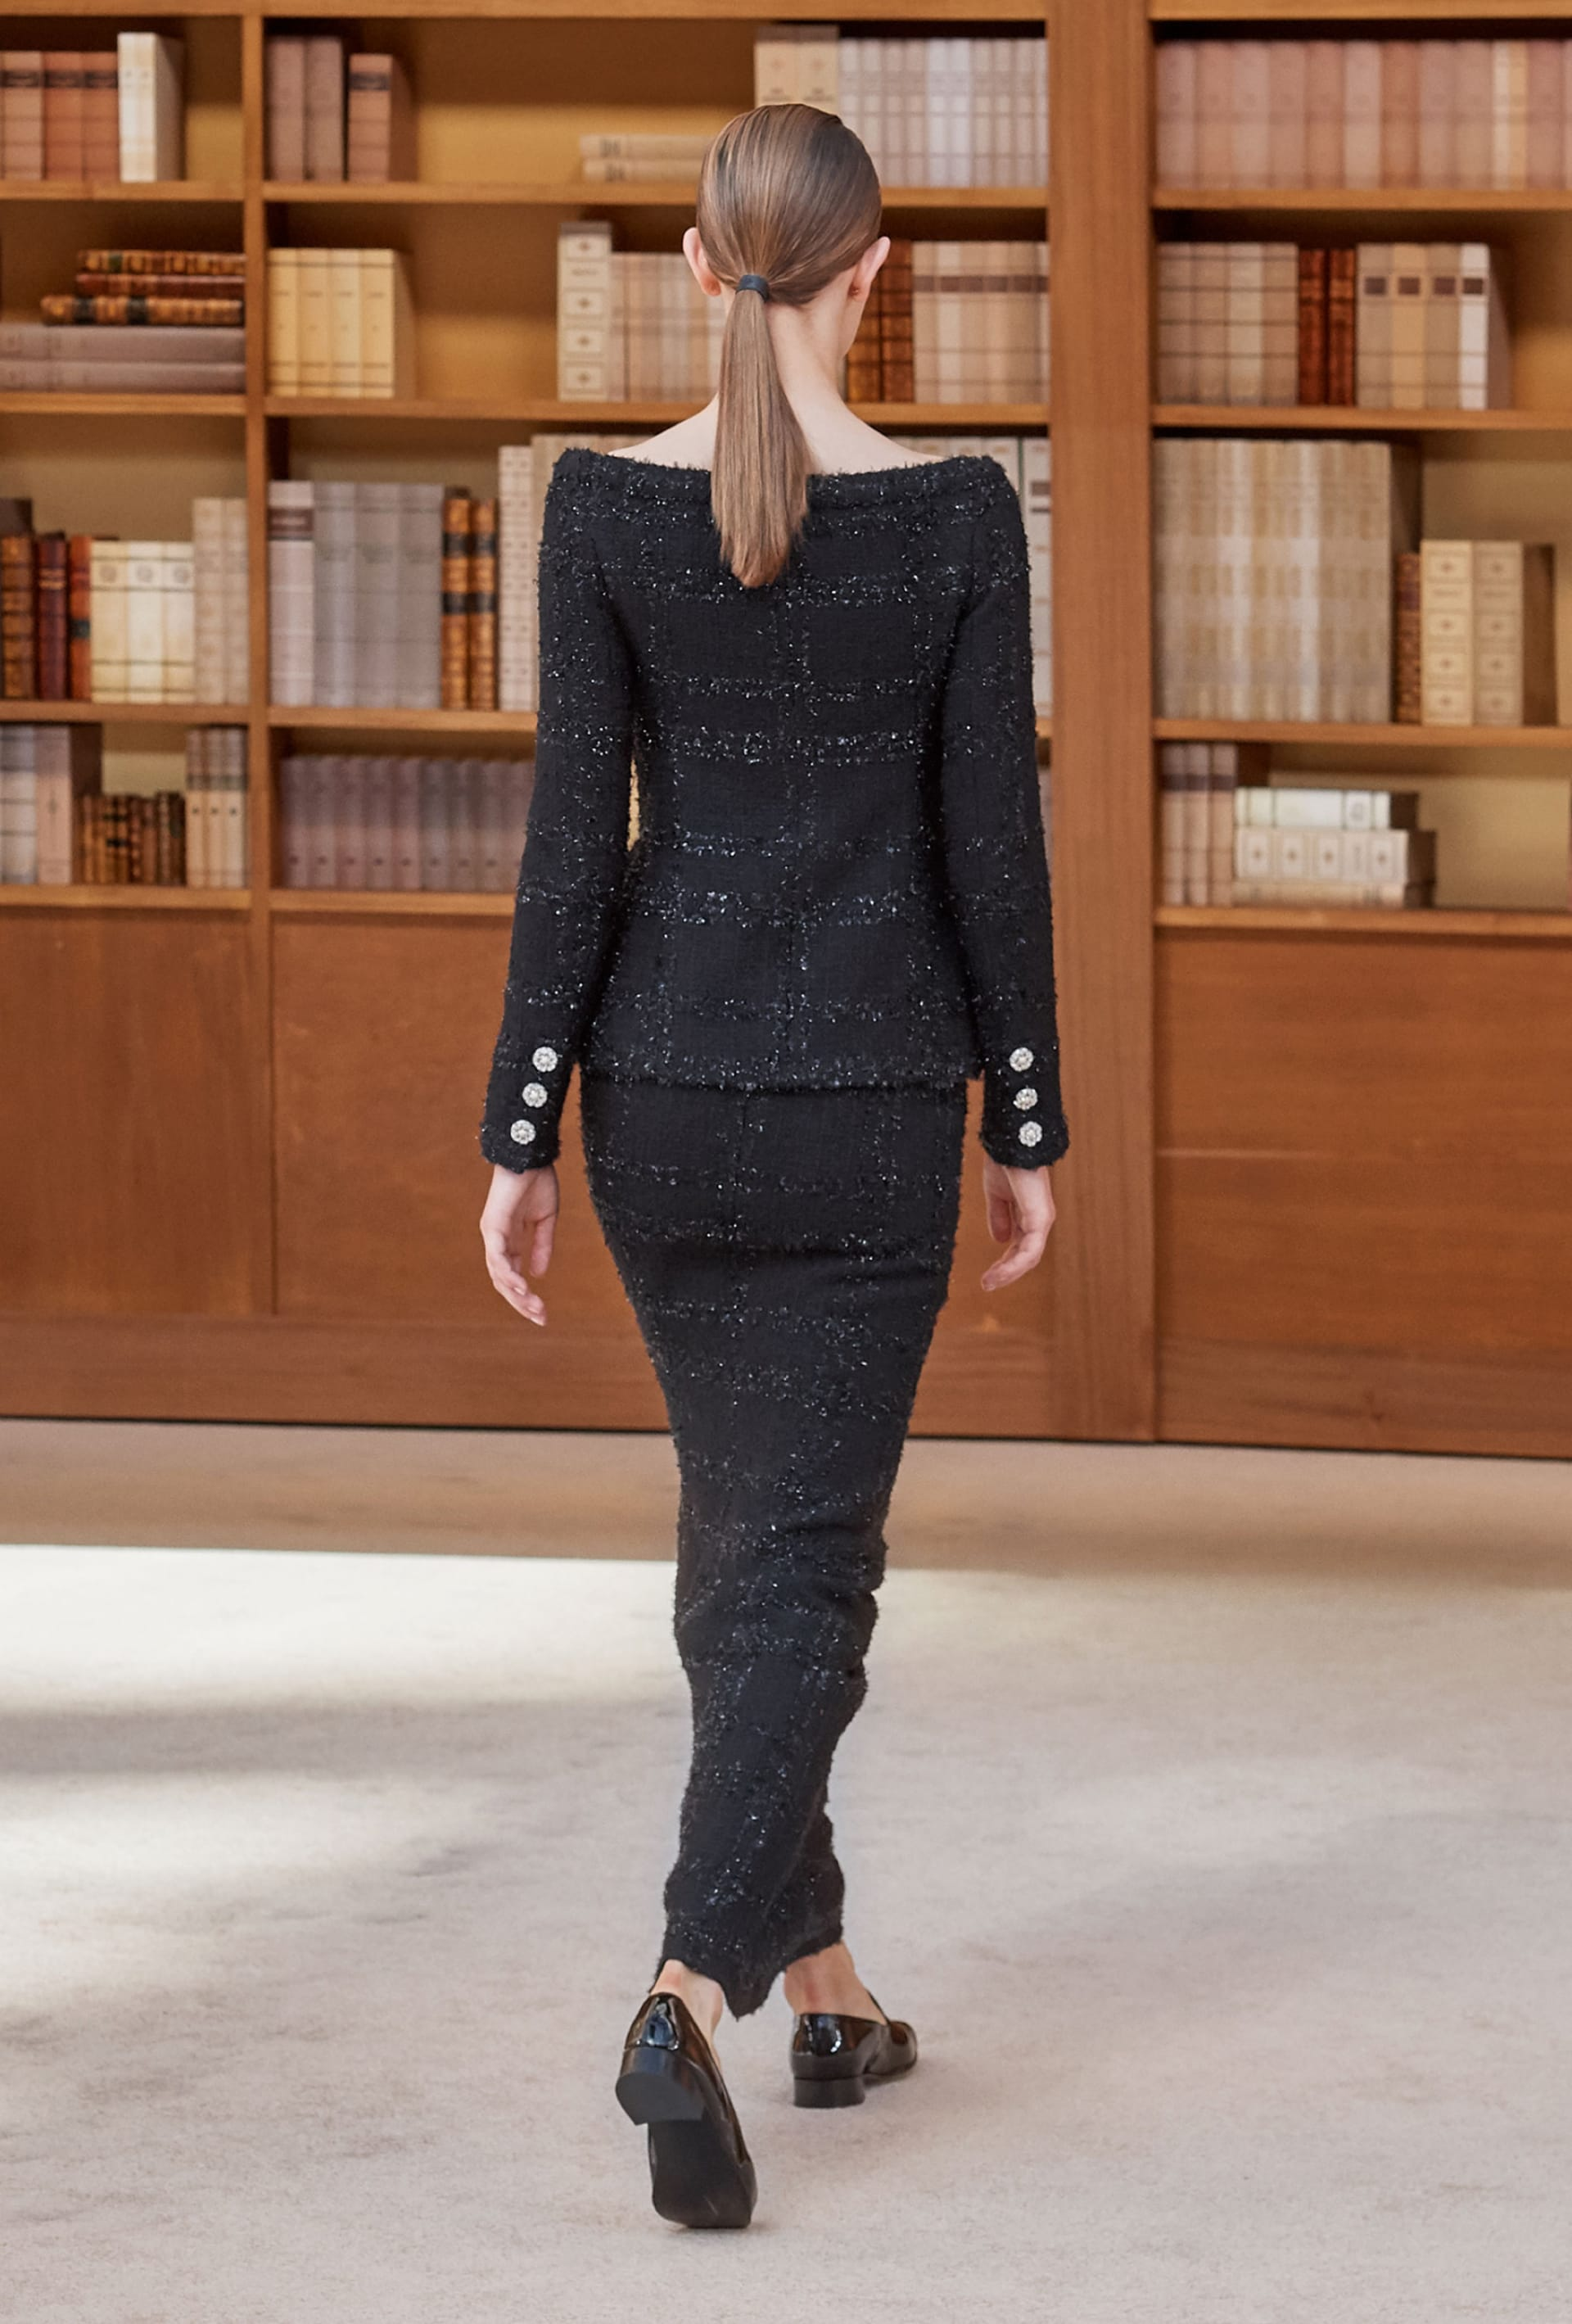 View 5 - Look 30 - Fall-Winter 2019/20 Haute-Couture - see full sized version